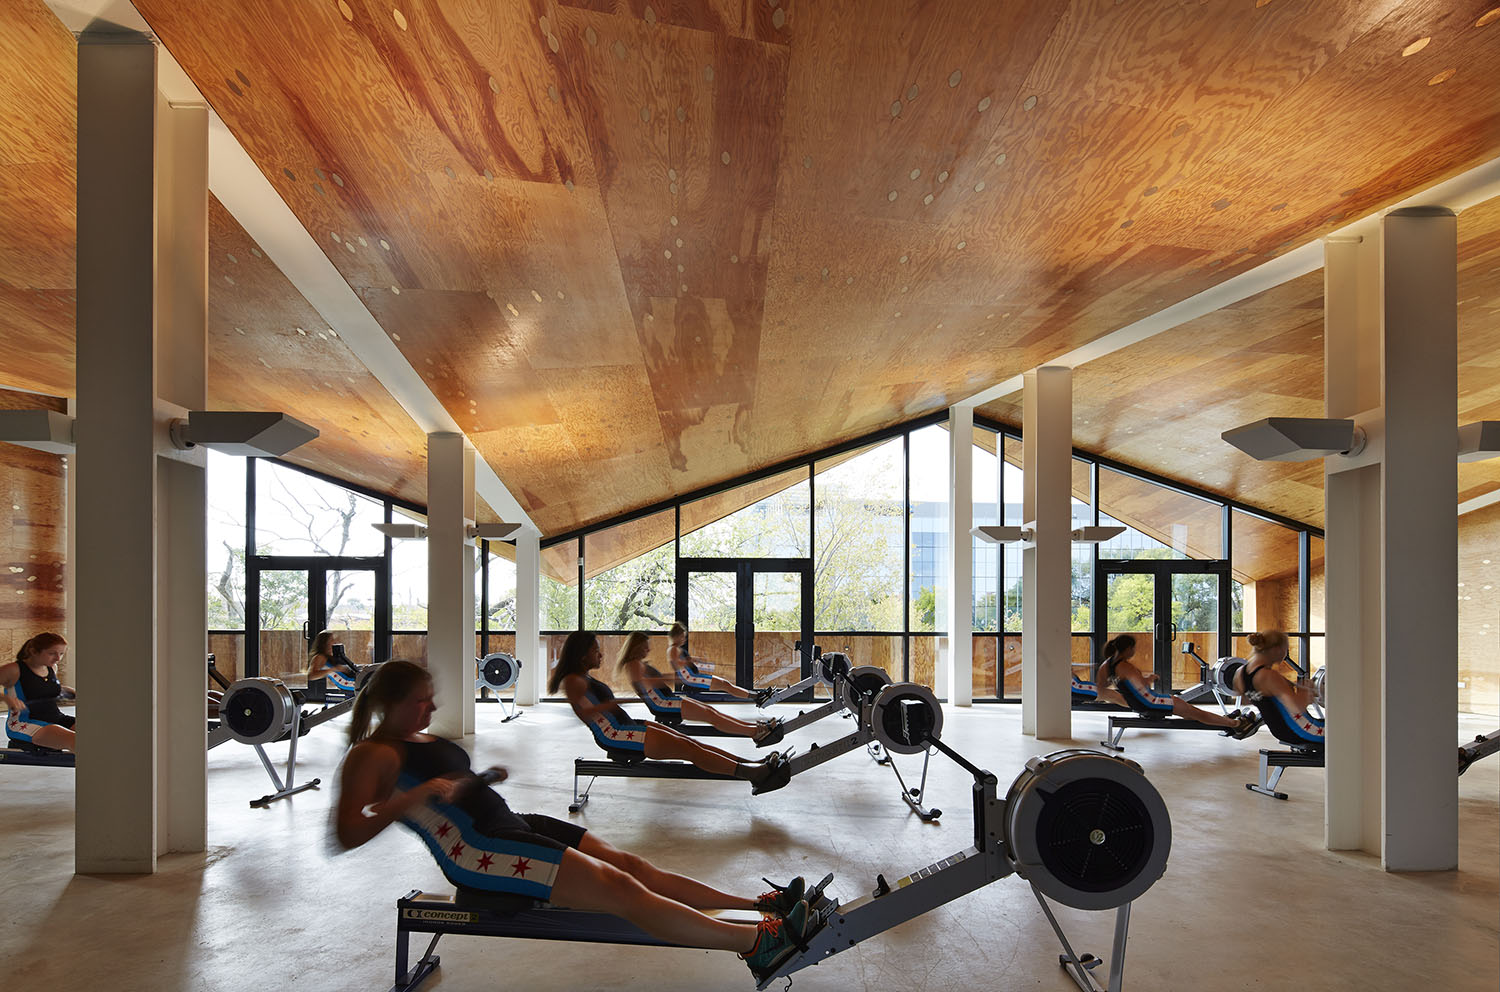 The field houses accommodate year-round training programs for both youth and adult rowing teams, clubs, and organizations, providing space for team practice, fitness, and courses for people with disabiliti